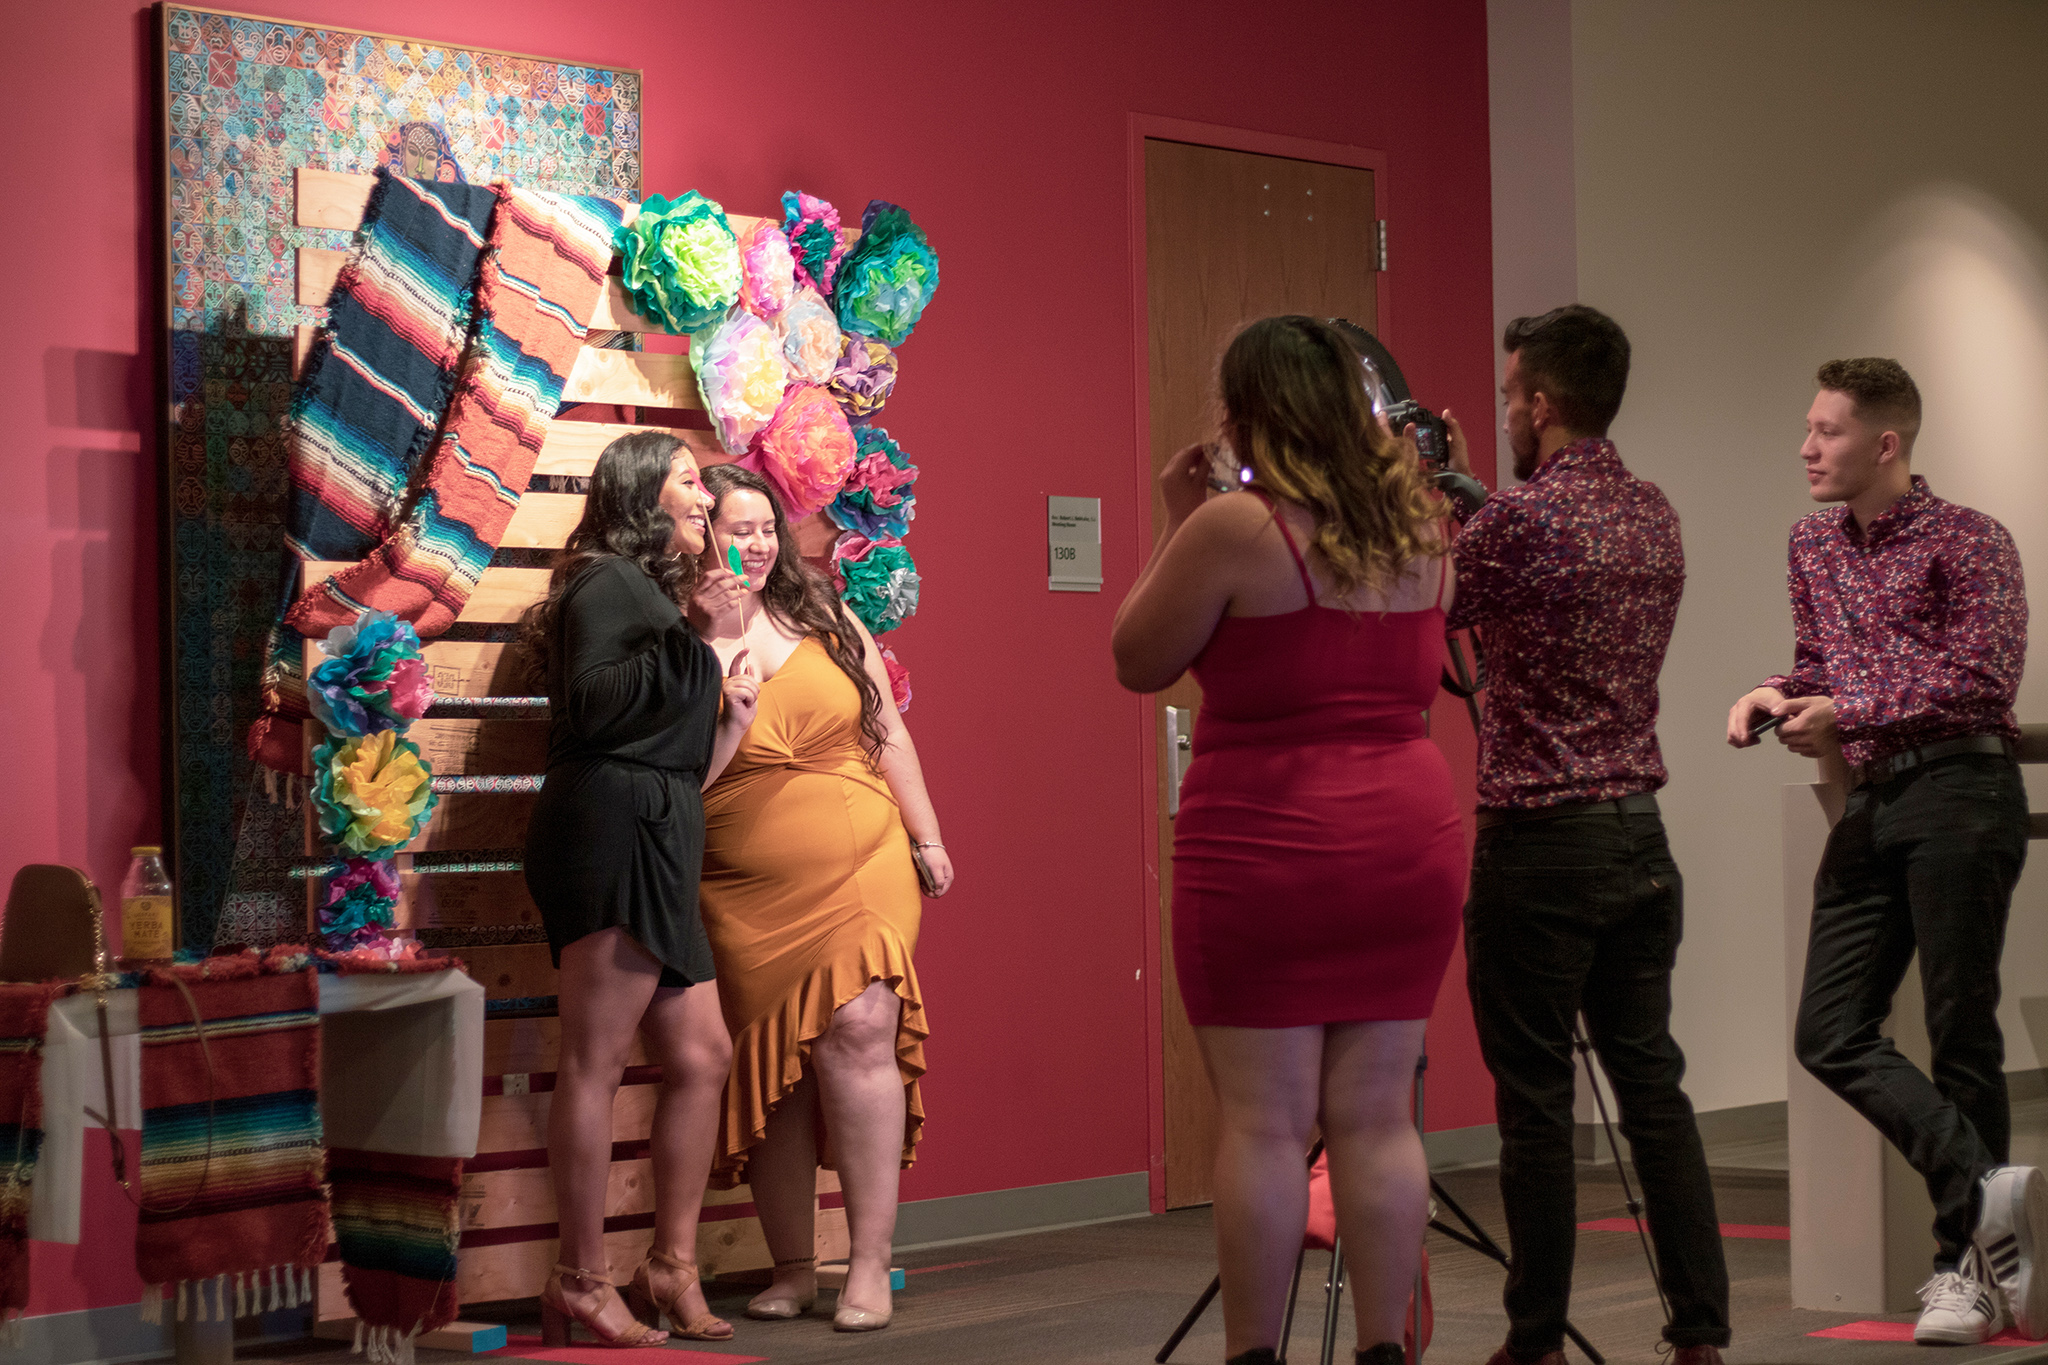 MEChA Celebrates Latinx Culture at Celebración